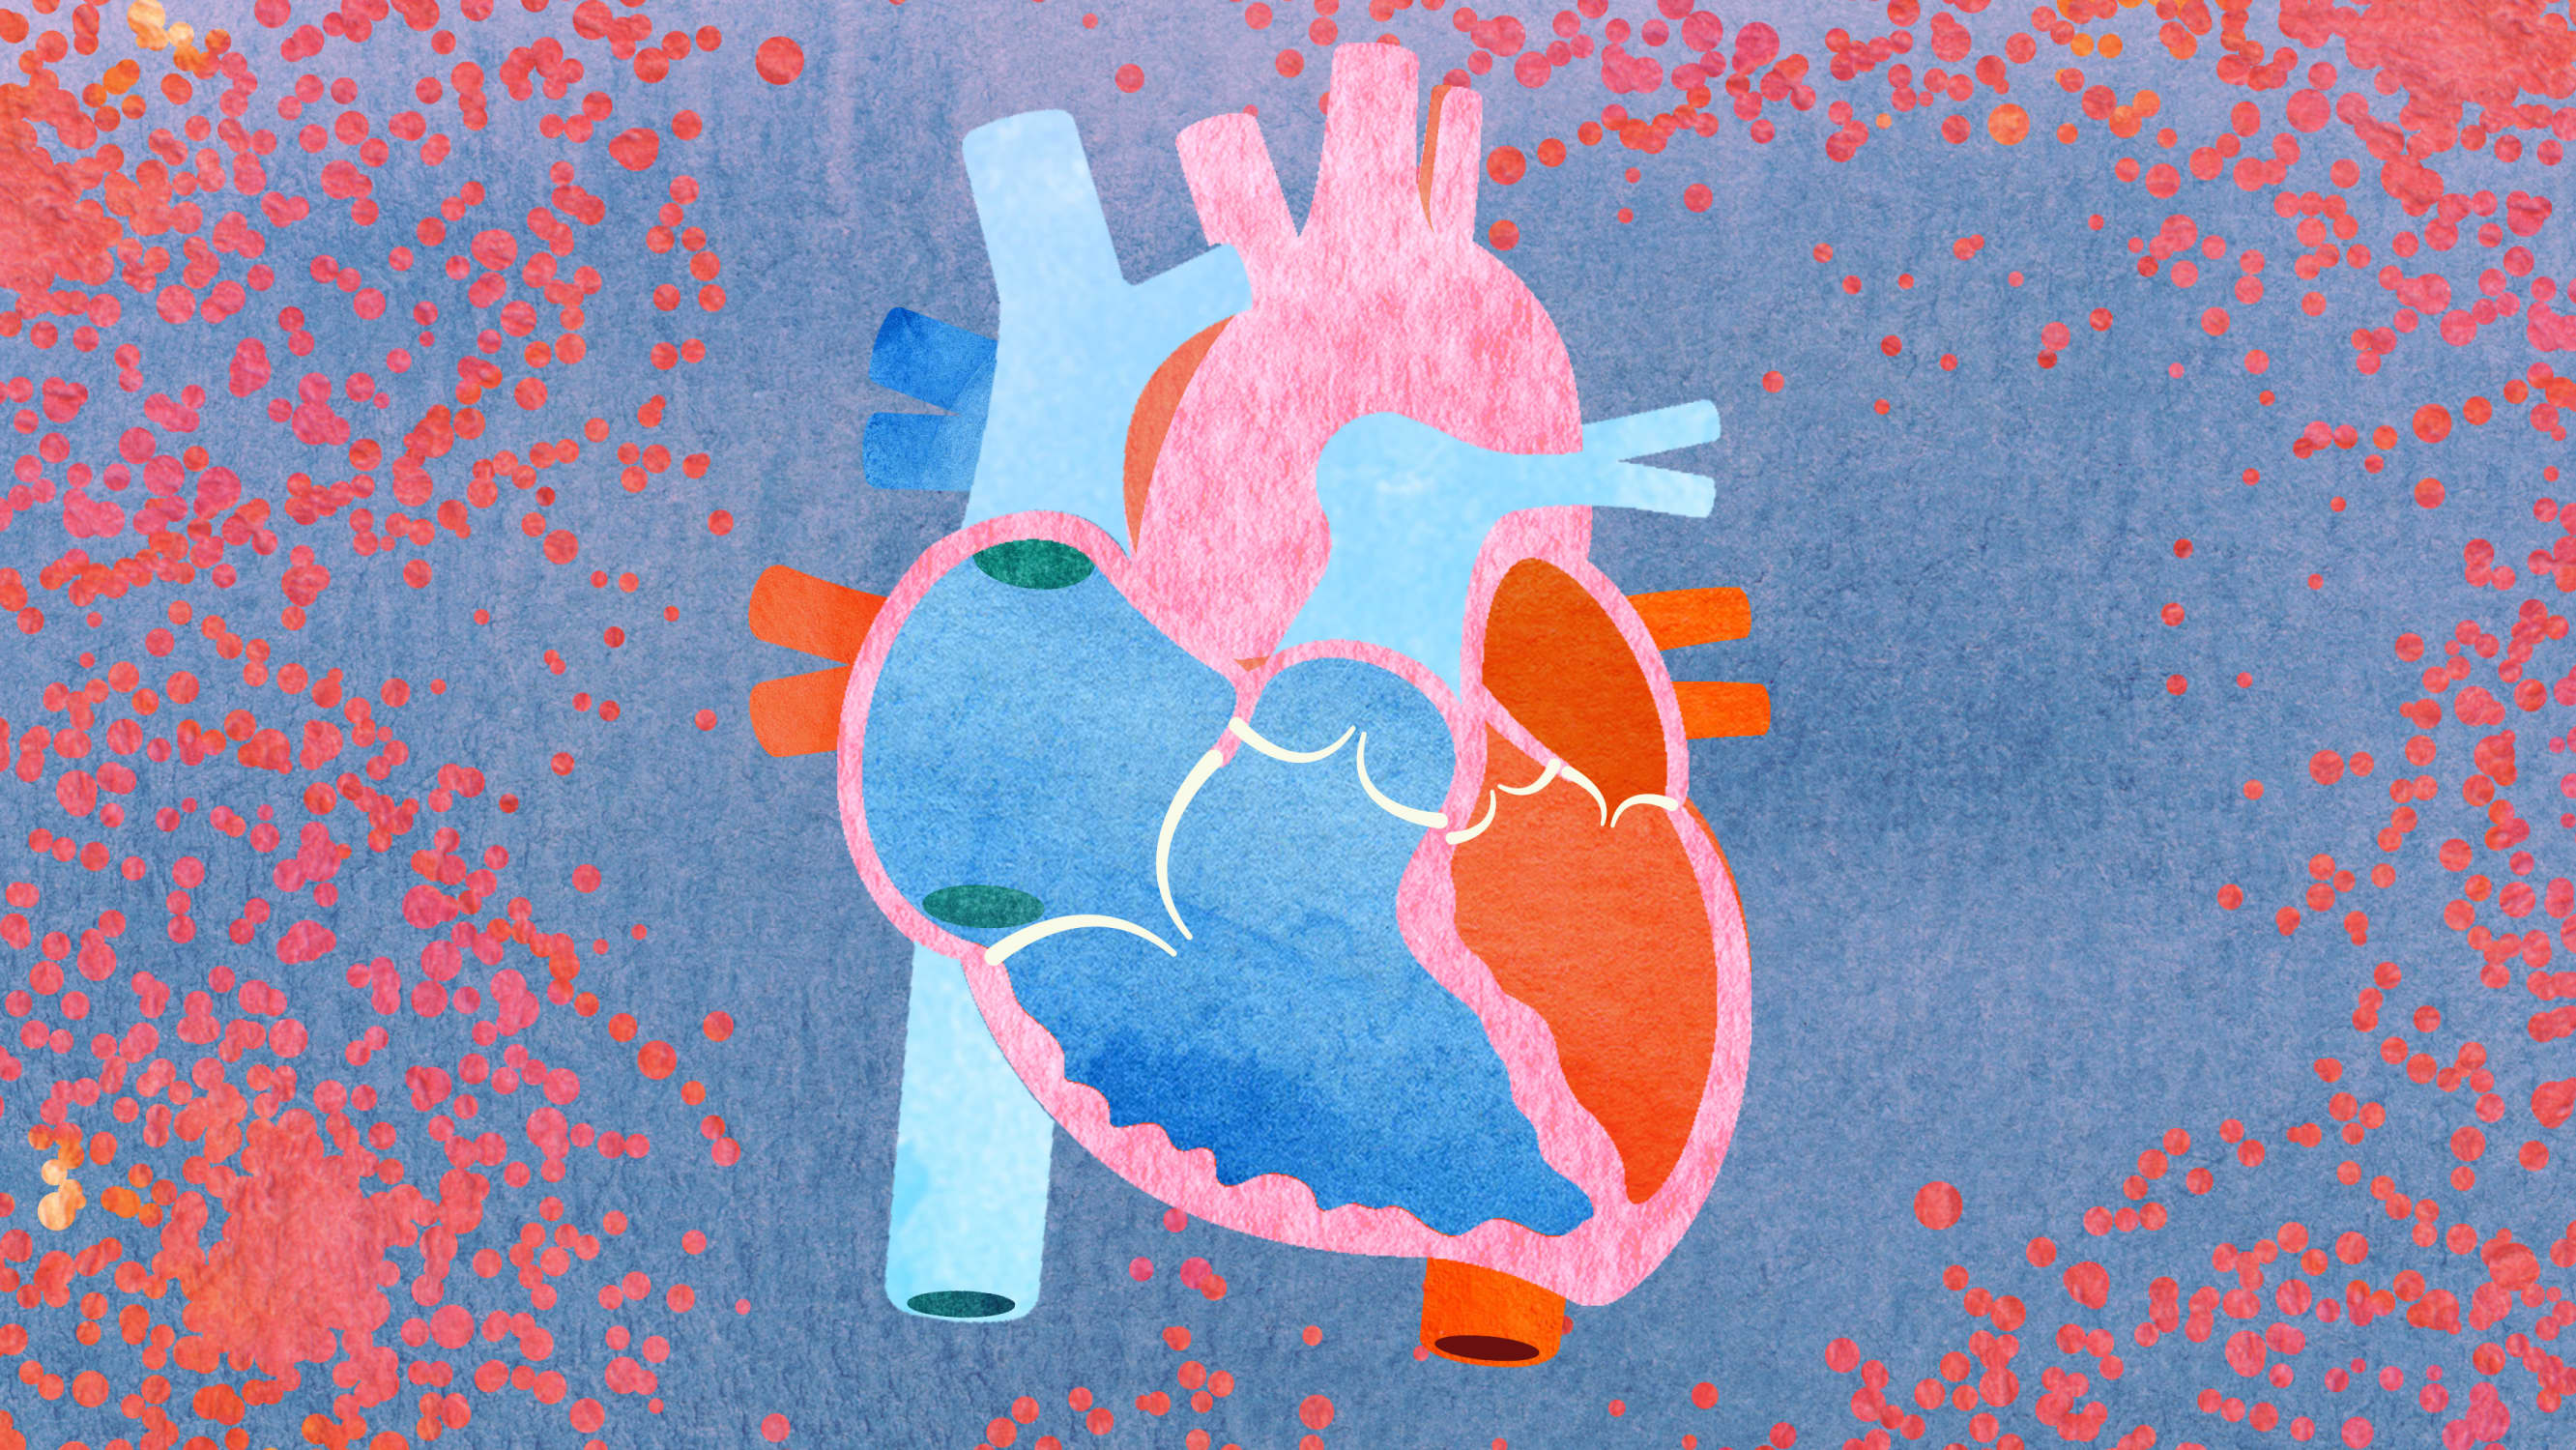 Heart illustration focusing on cardio-oncology